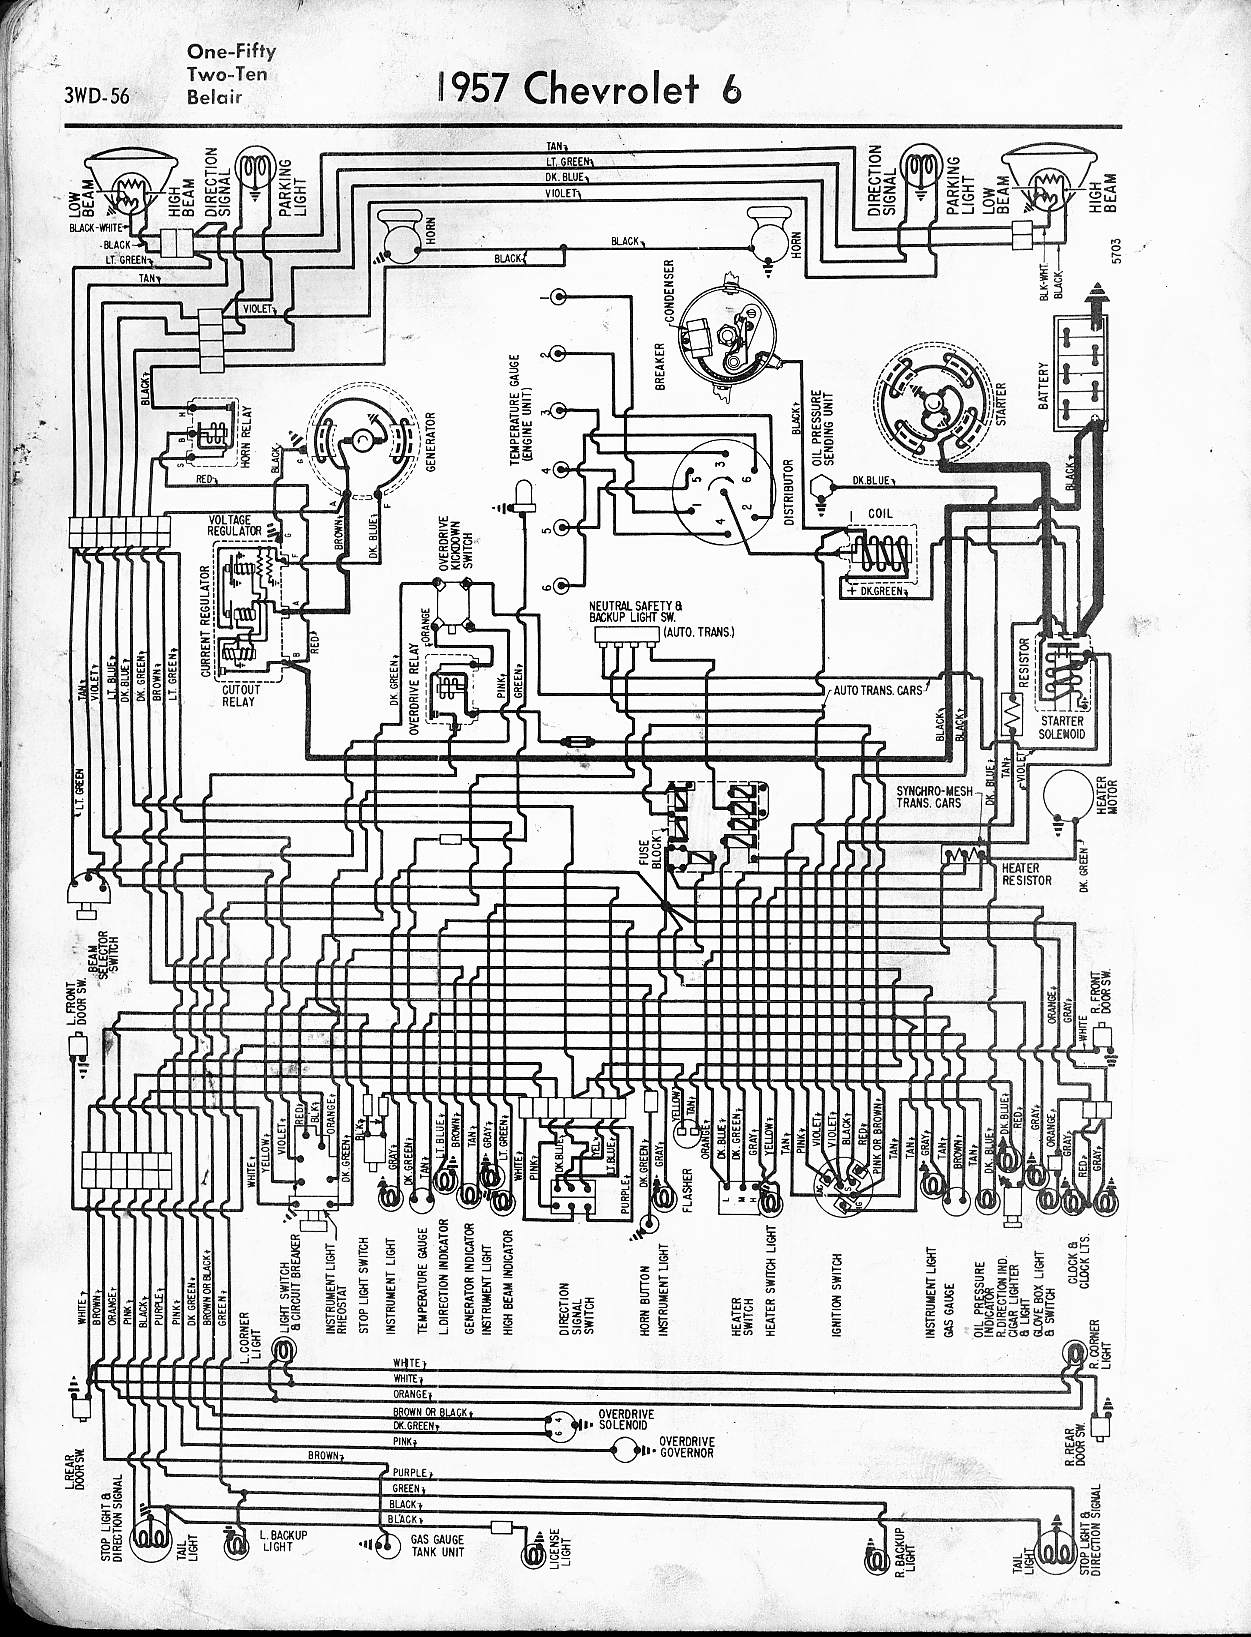 57 65 Chevy Wiring Diagrams Painless Indicator Light Diagram 1957 6 Cyl One Fifty Two Ten Belair